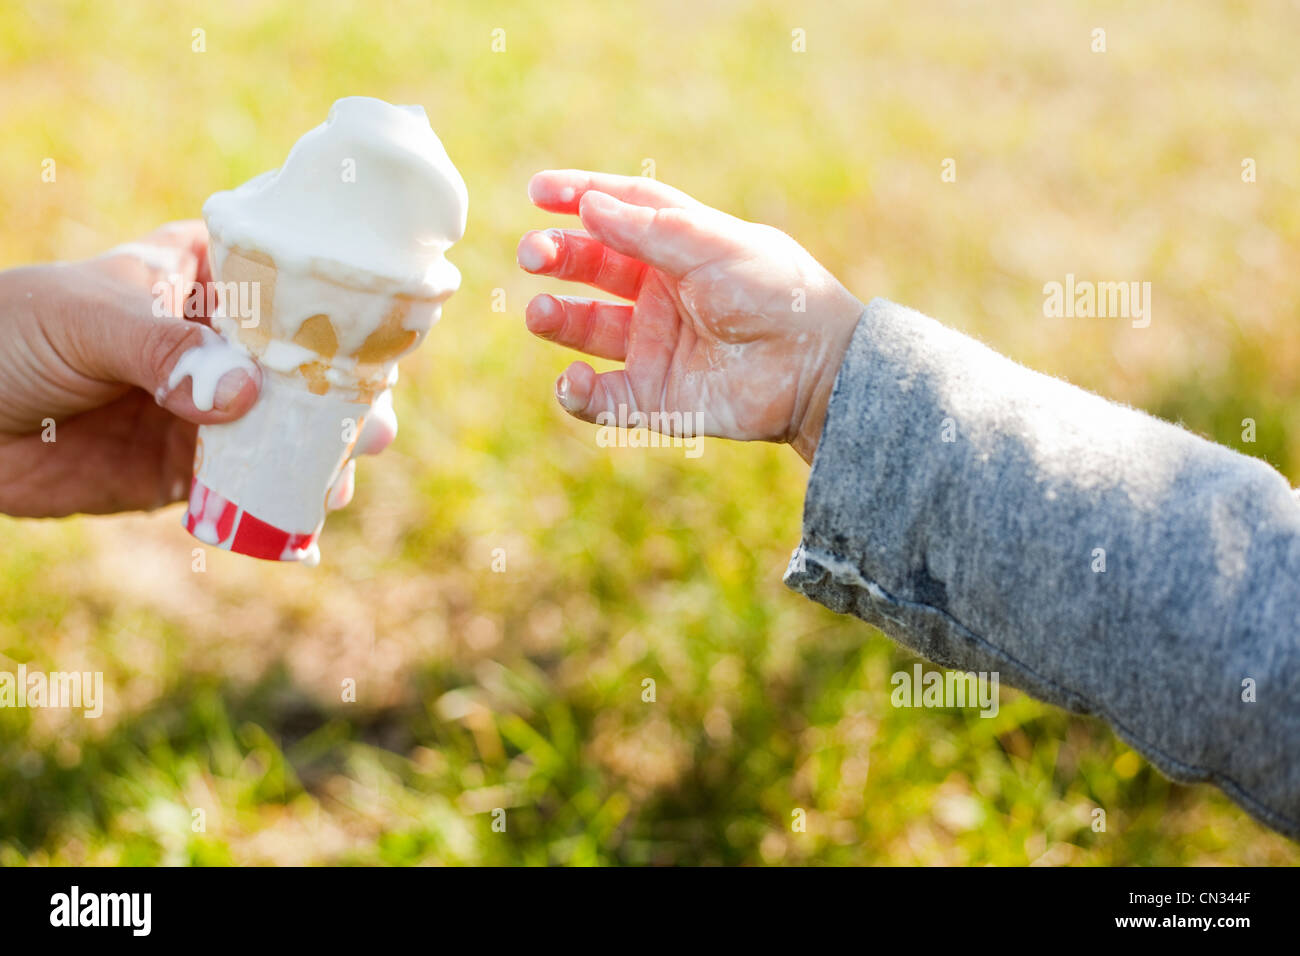 Toddler taking ice cream cone - Stock Image